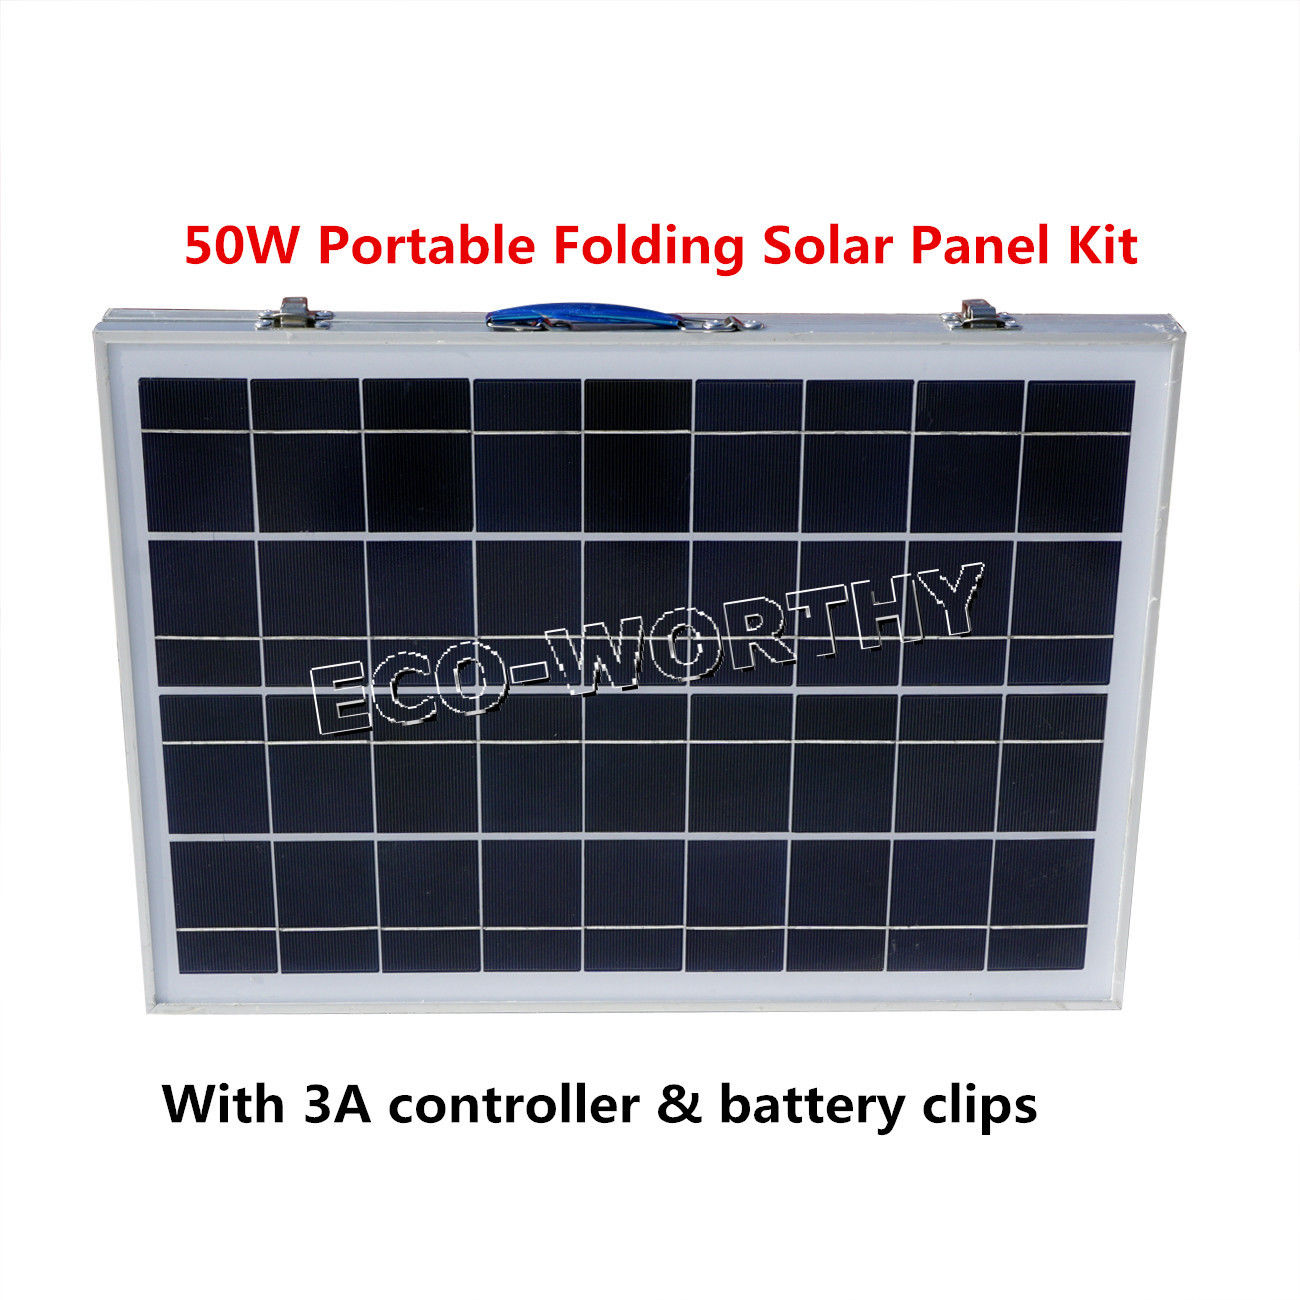 50W 18V Poly Folding Foldable Solar Panel  for  12v battery,  car, RV,camping,boat,free shipping portable outdoor 18v 30w portable smart solar power panel car rv boat battery bank charger universal w clip outdoor tool camping